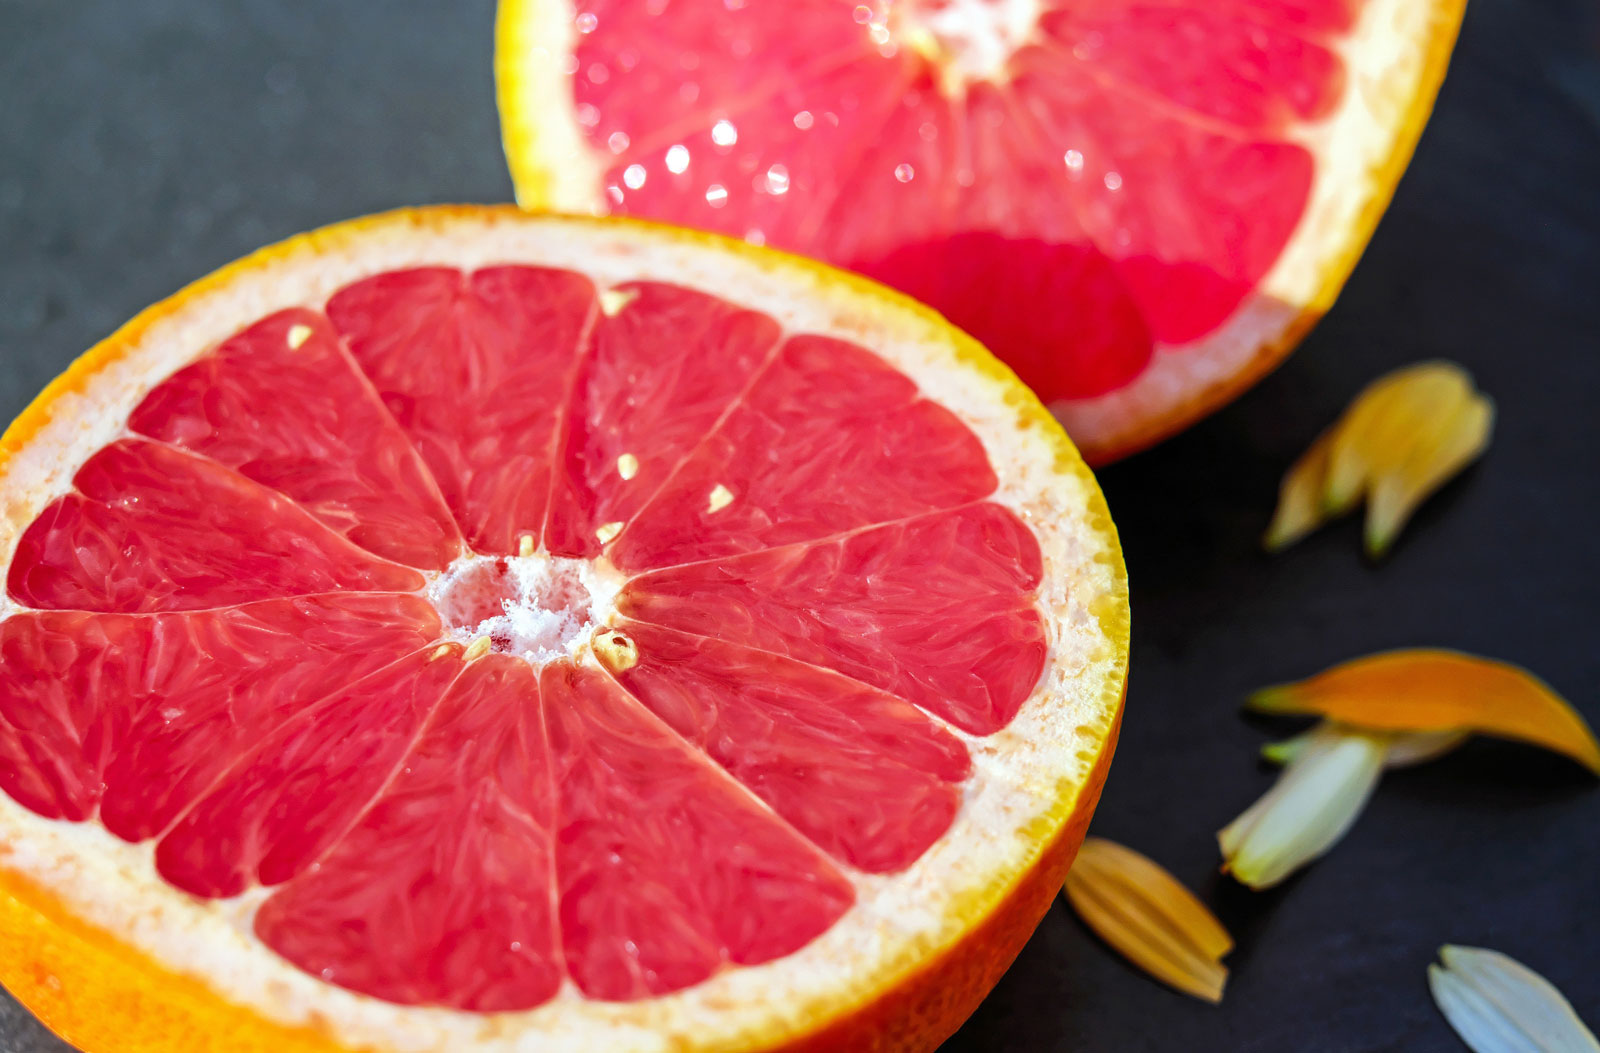 Grapefruit | The Best Fruits and Vegetables for Juicing With 3 Ingredients